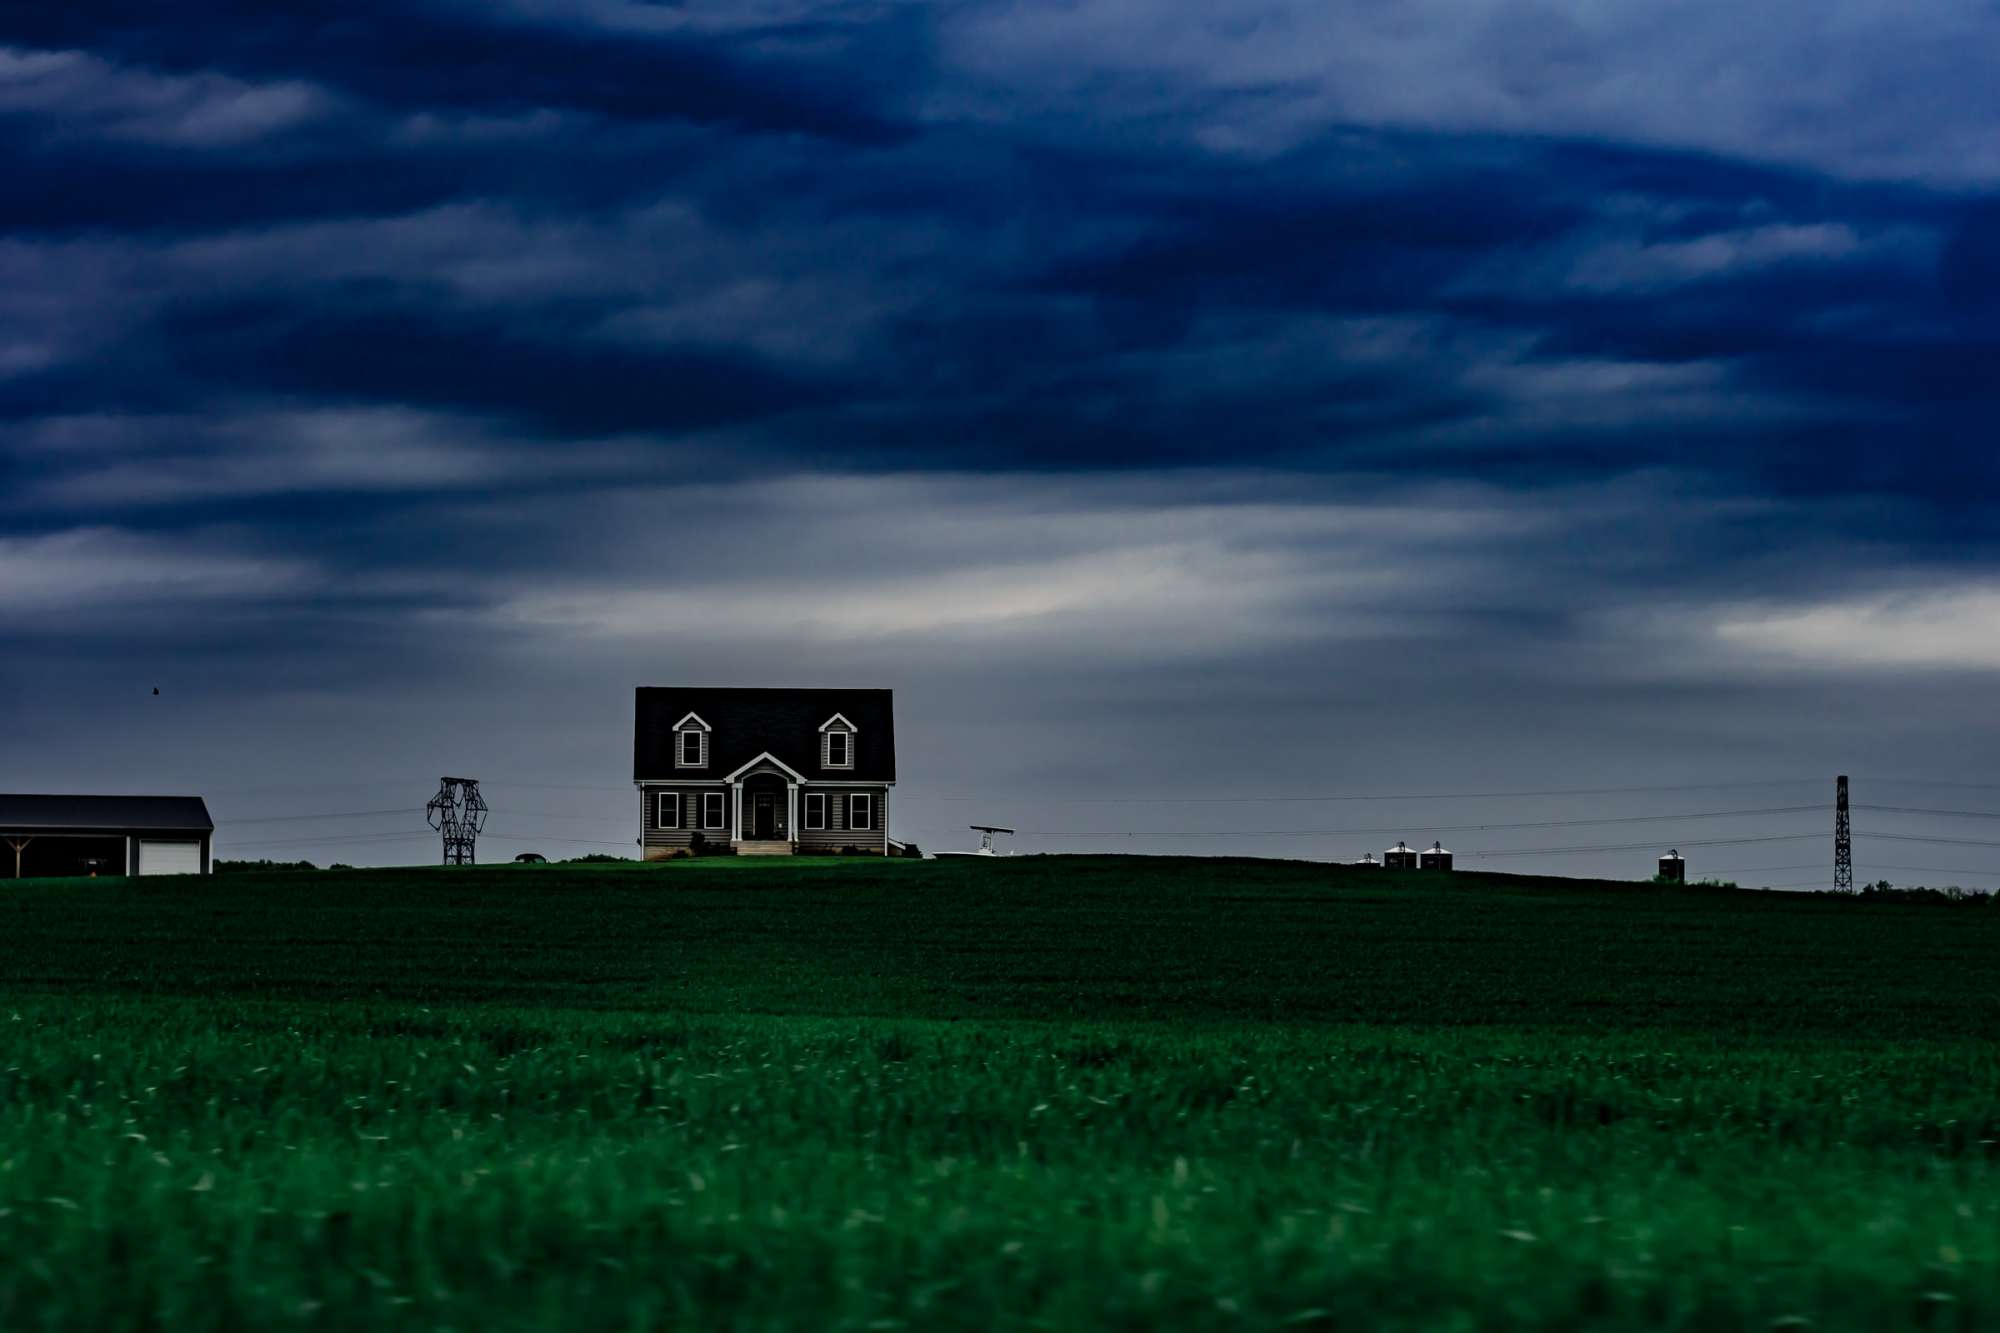 A house in a field